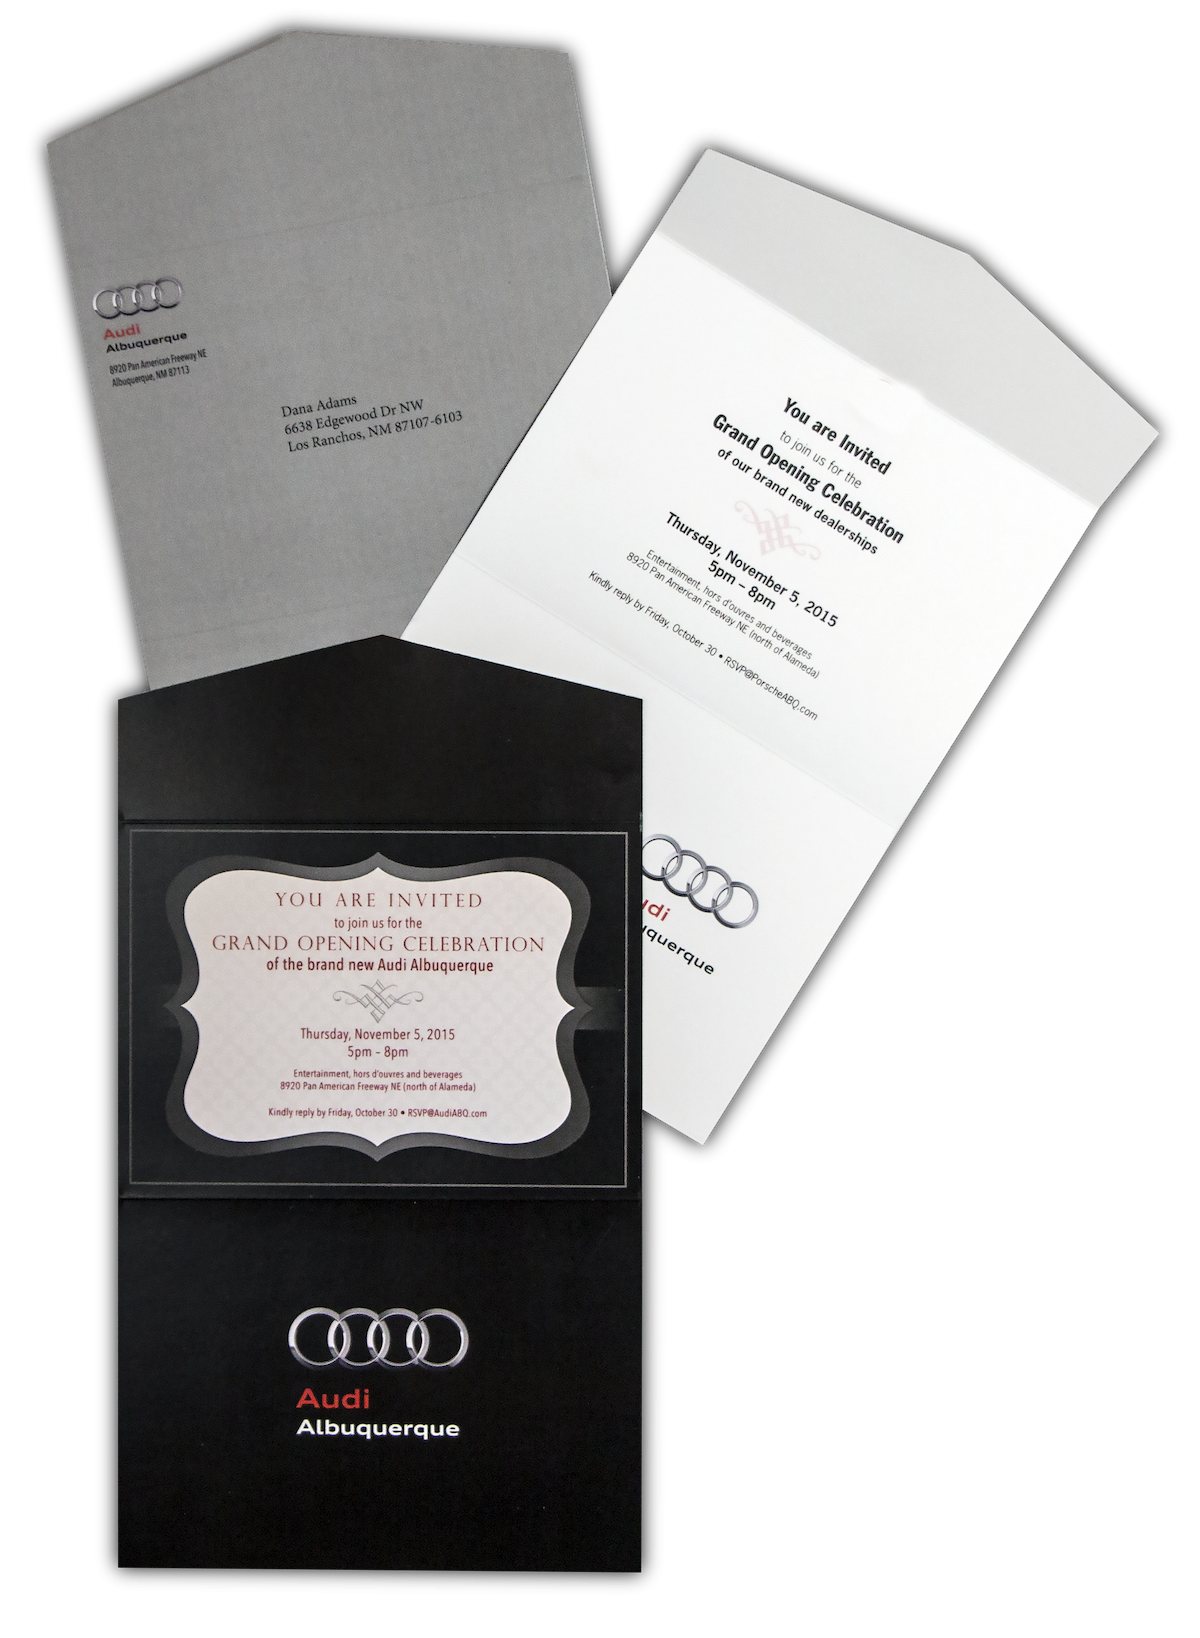 Audi Albuquerque Invitations Image